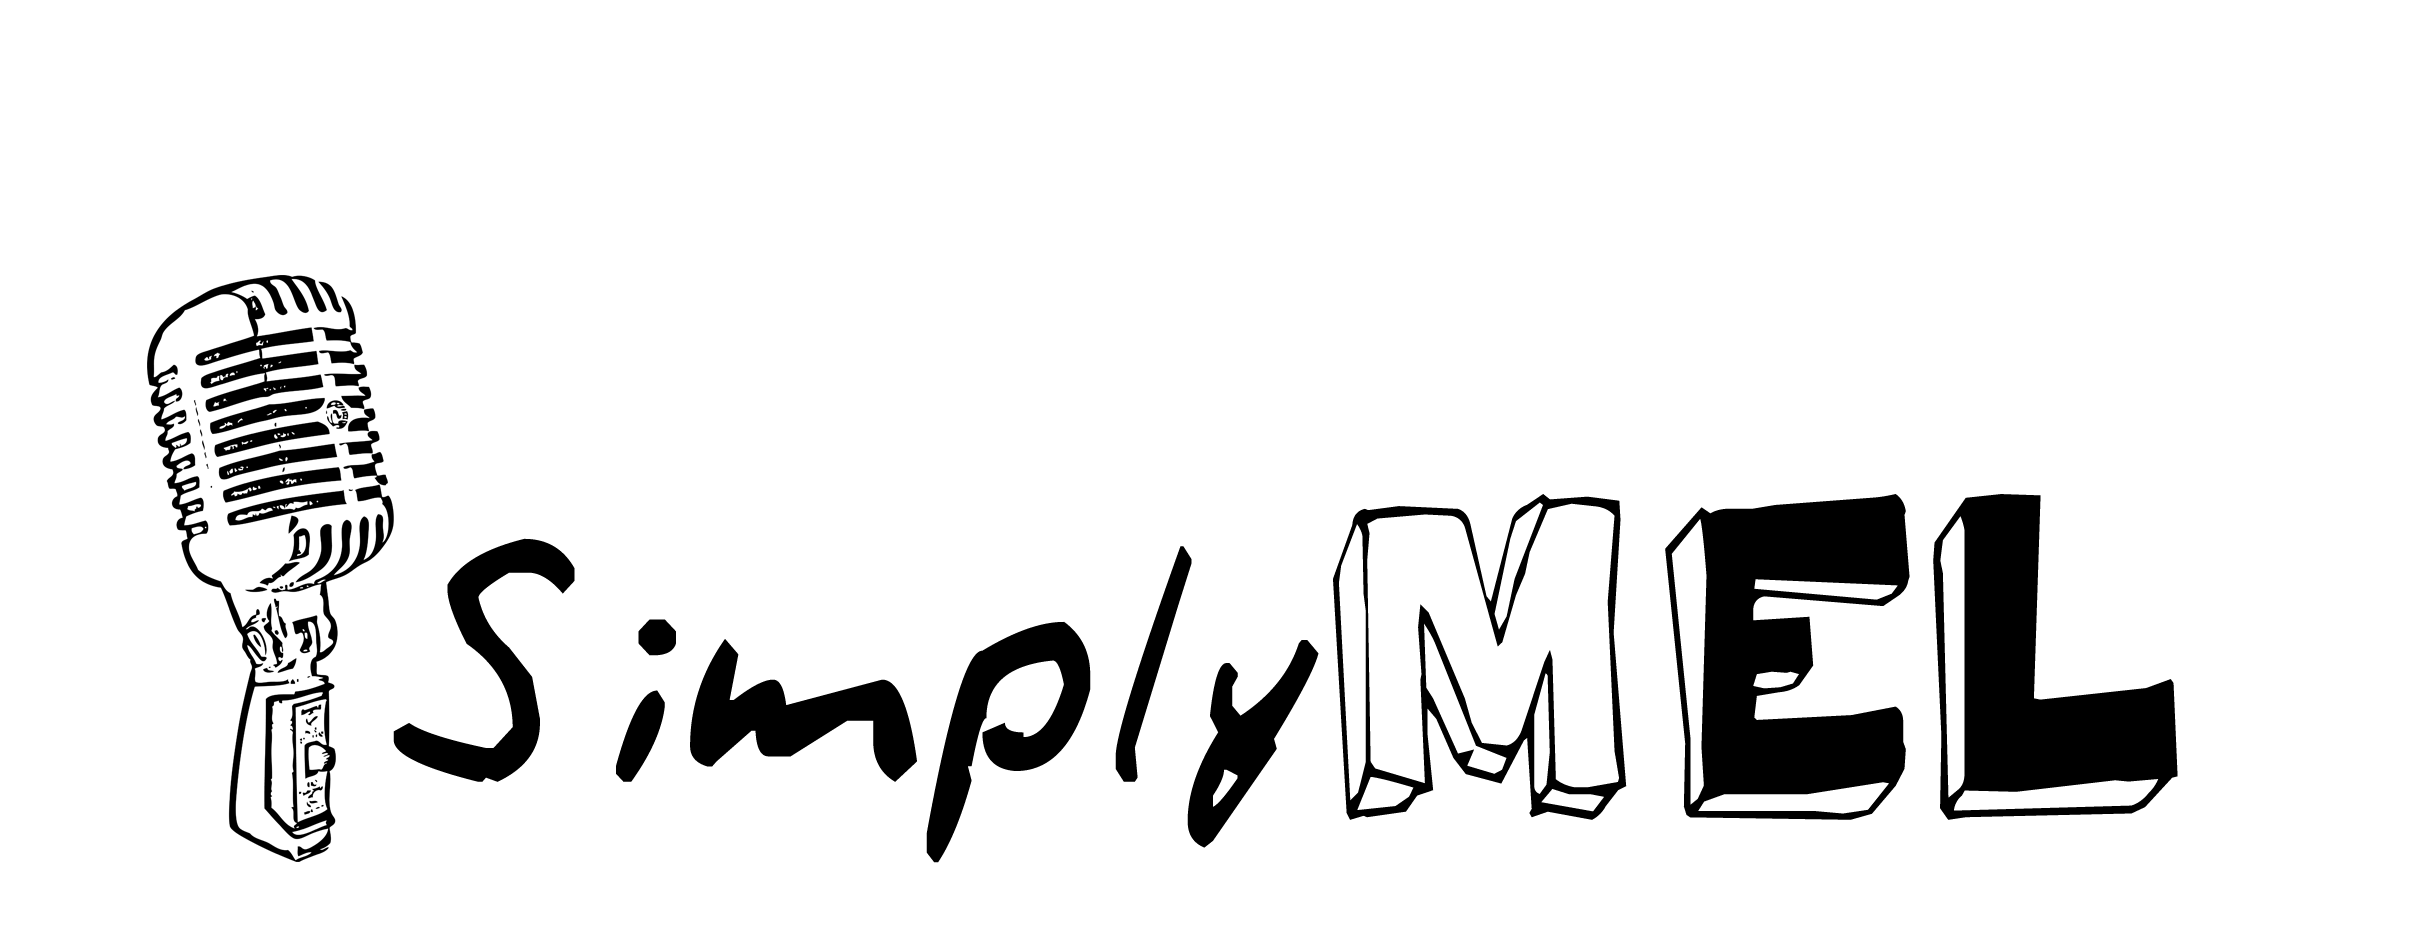 Simply Mel – Experienced Singer, Songwriter and Musician